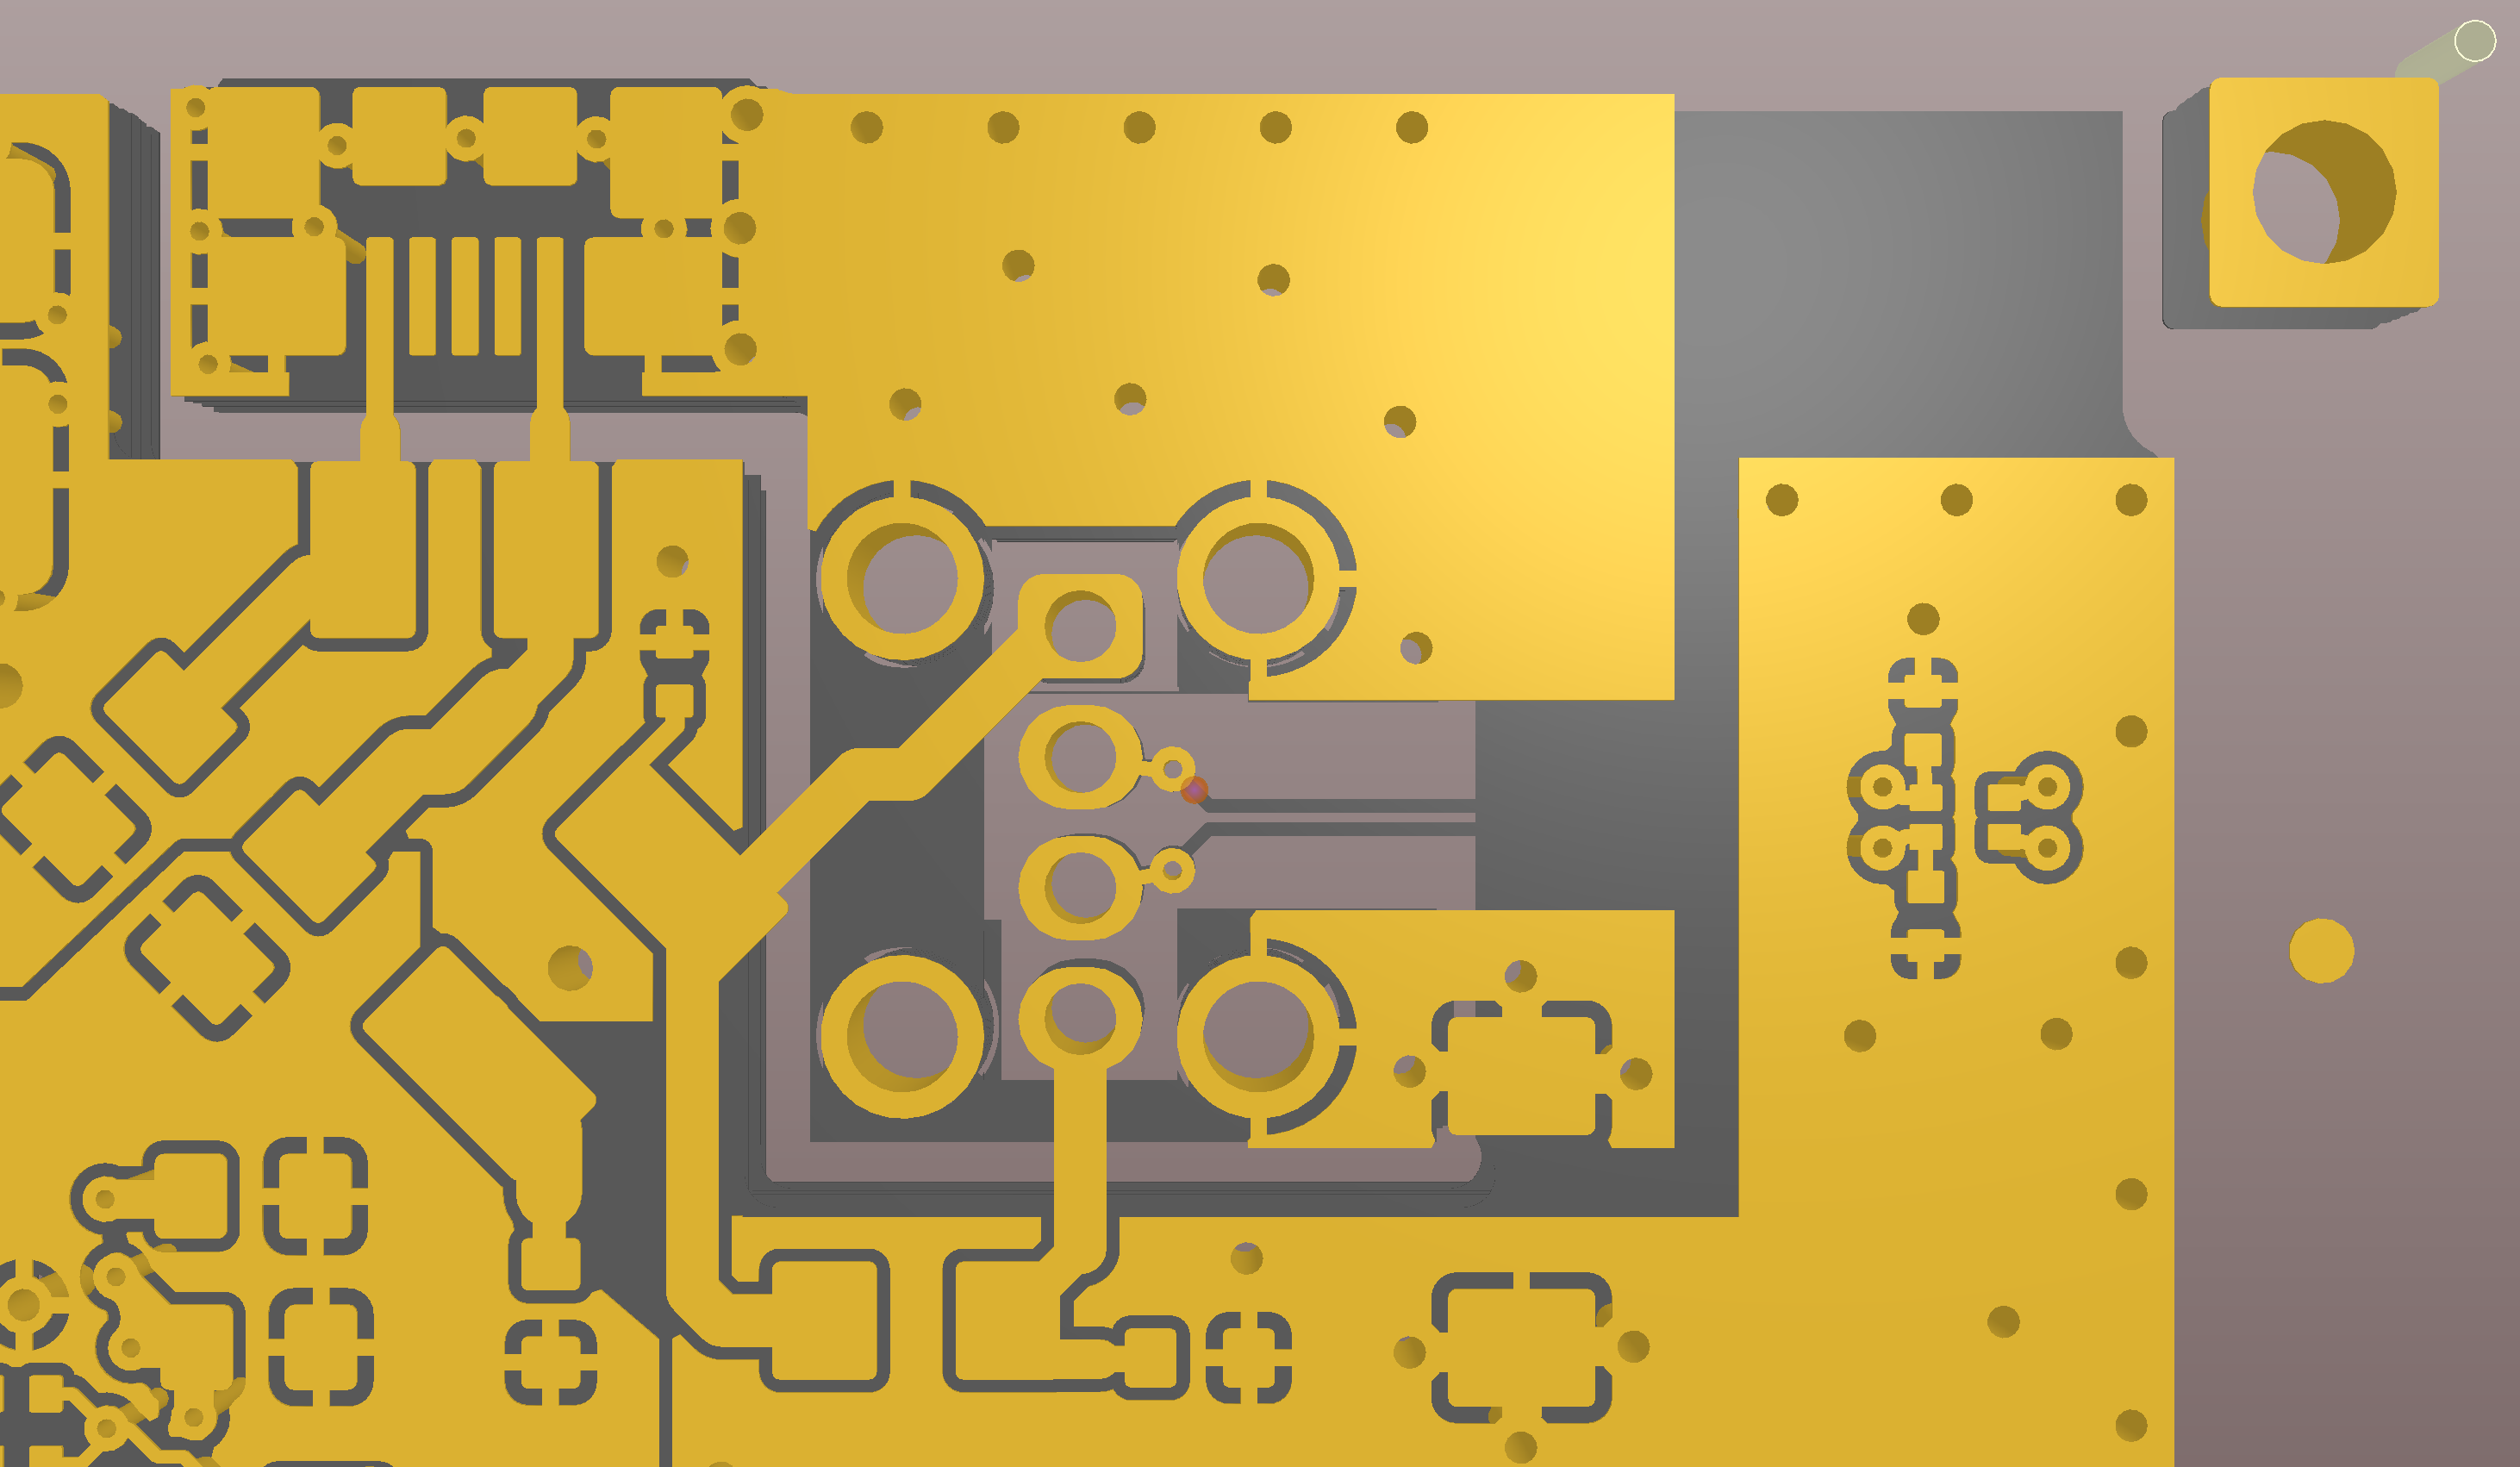 Designed This Circuit Based On Suggestions Made In The